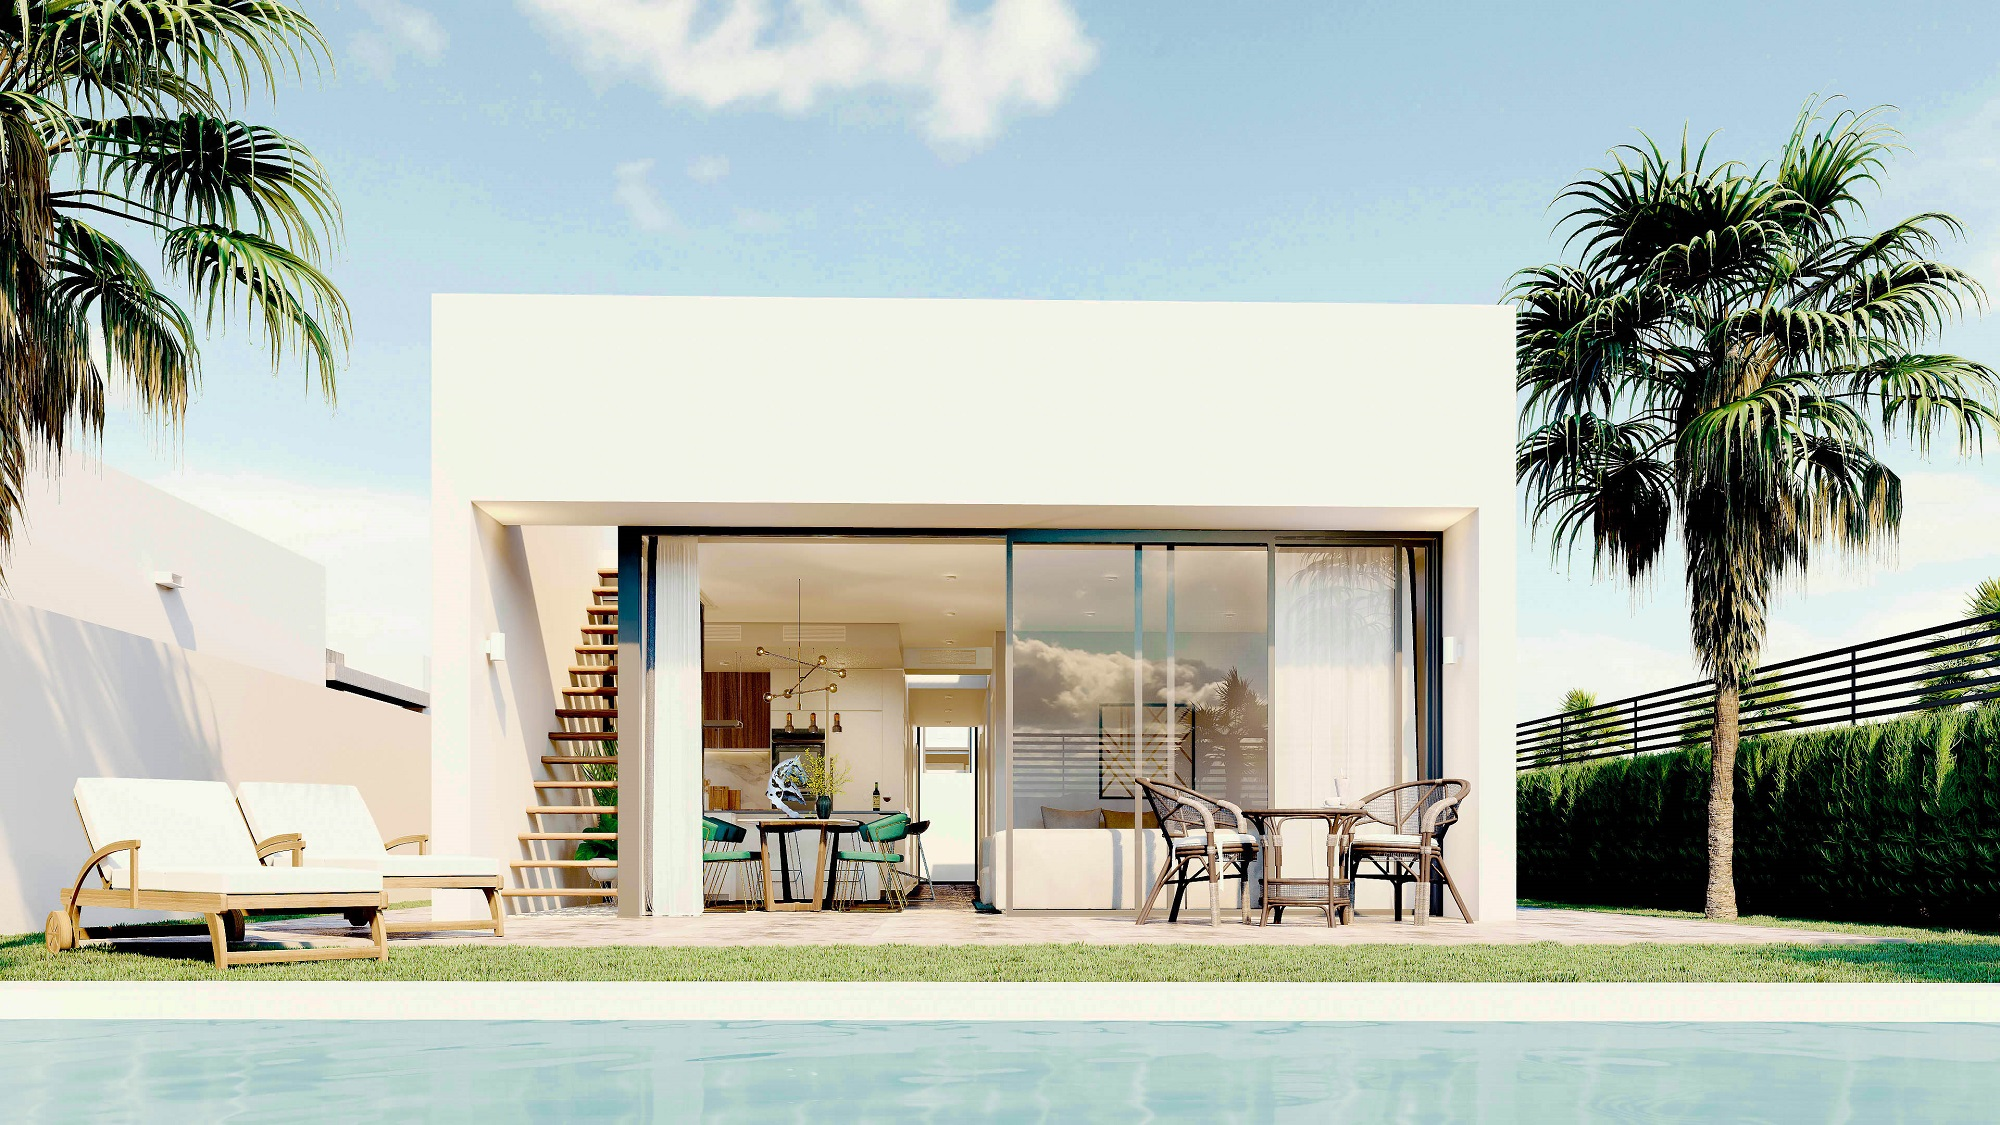 New Villas in Mar de Cristal